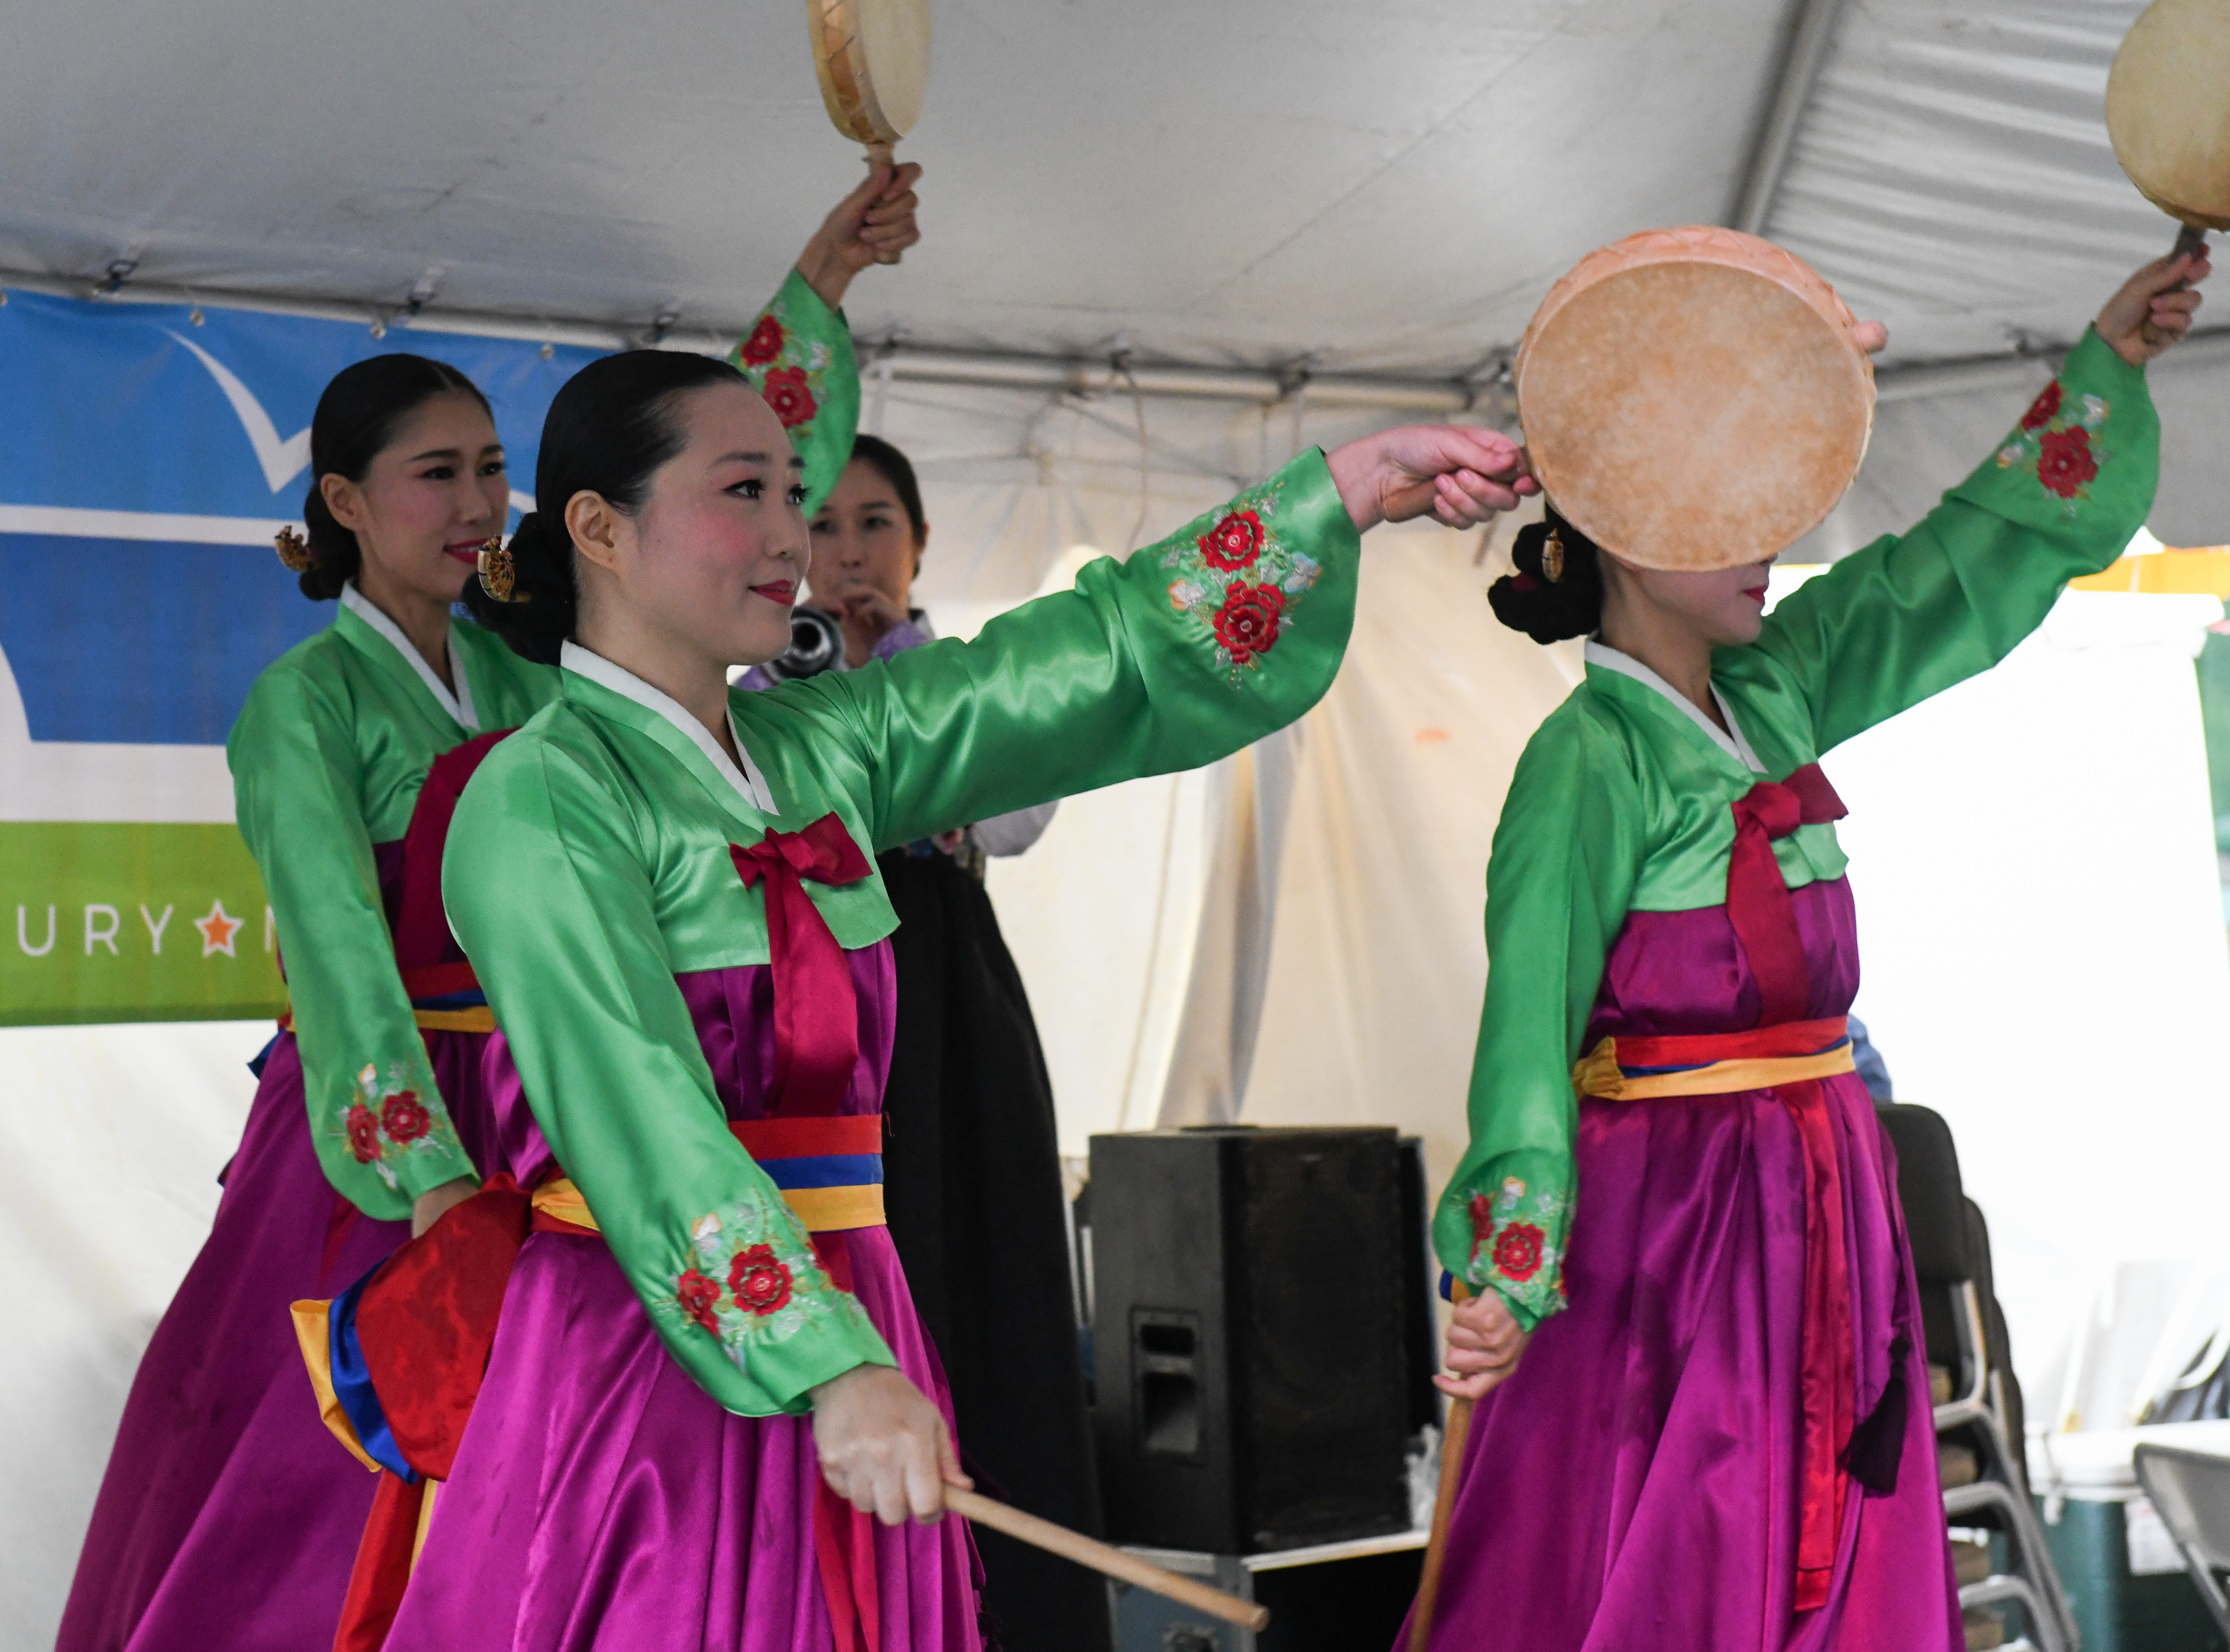 The Sounds of Korea group preforms at the National Folk Festival in Salisbury on Saturday, Sept. 8.